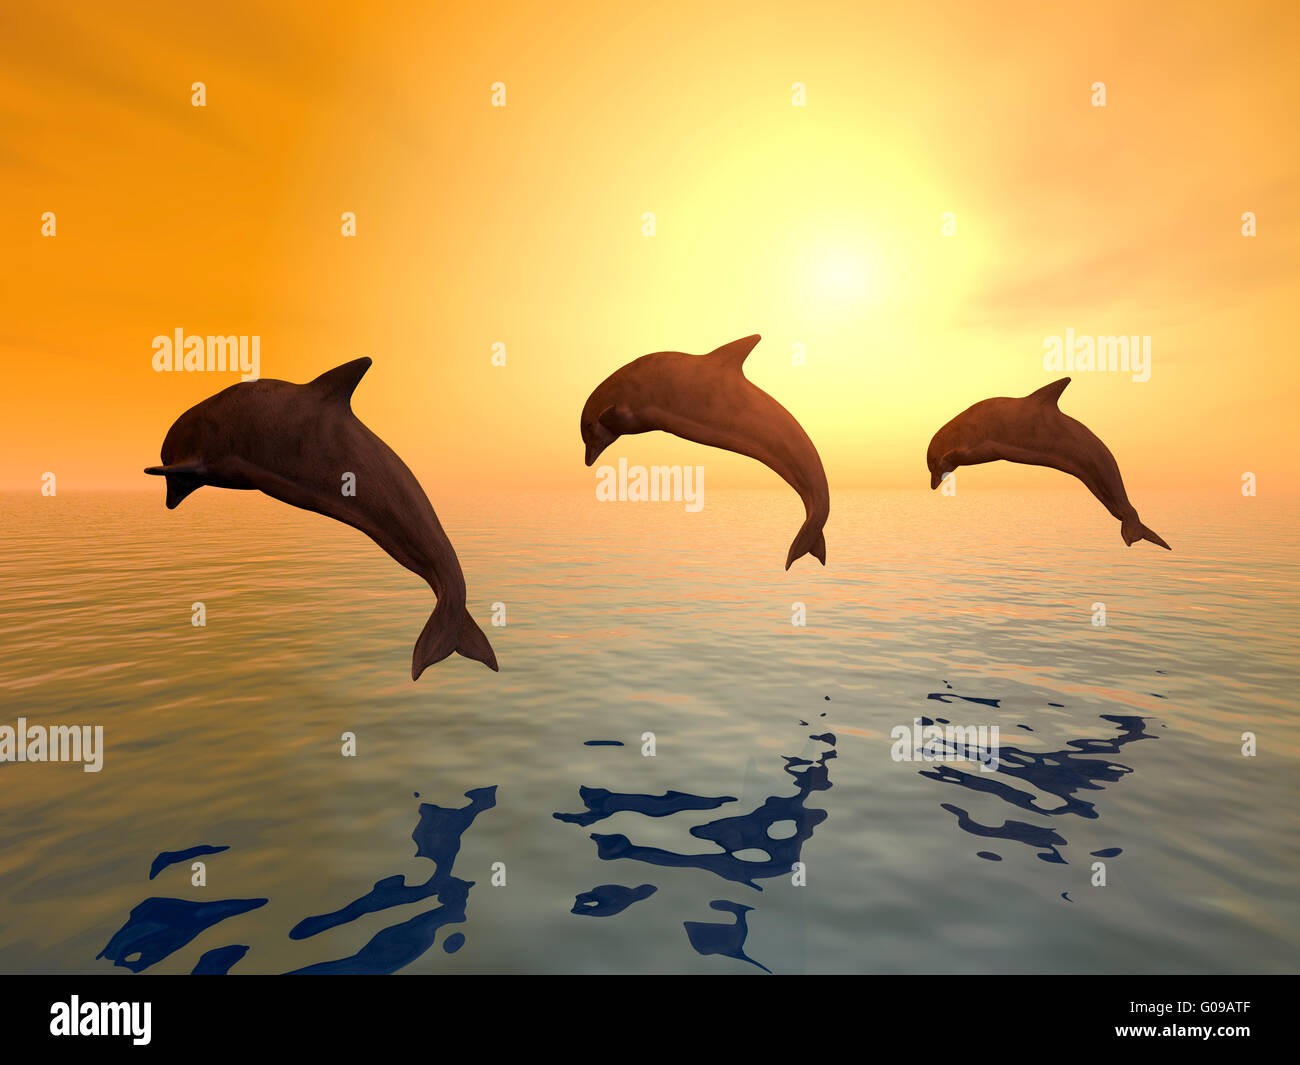 Jumping Dolphins - Stock Image